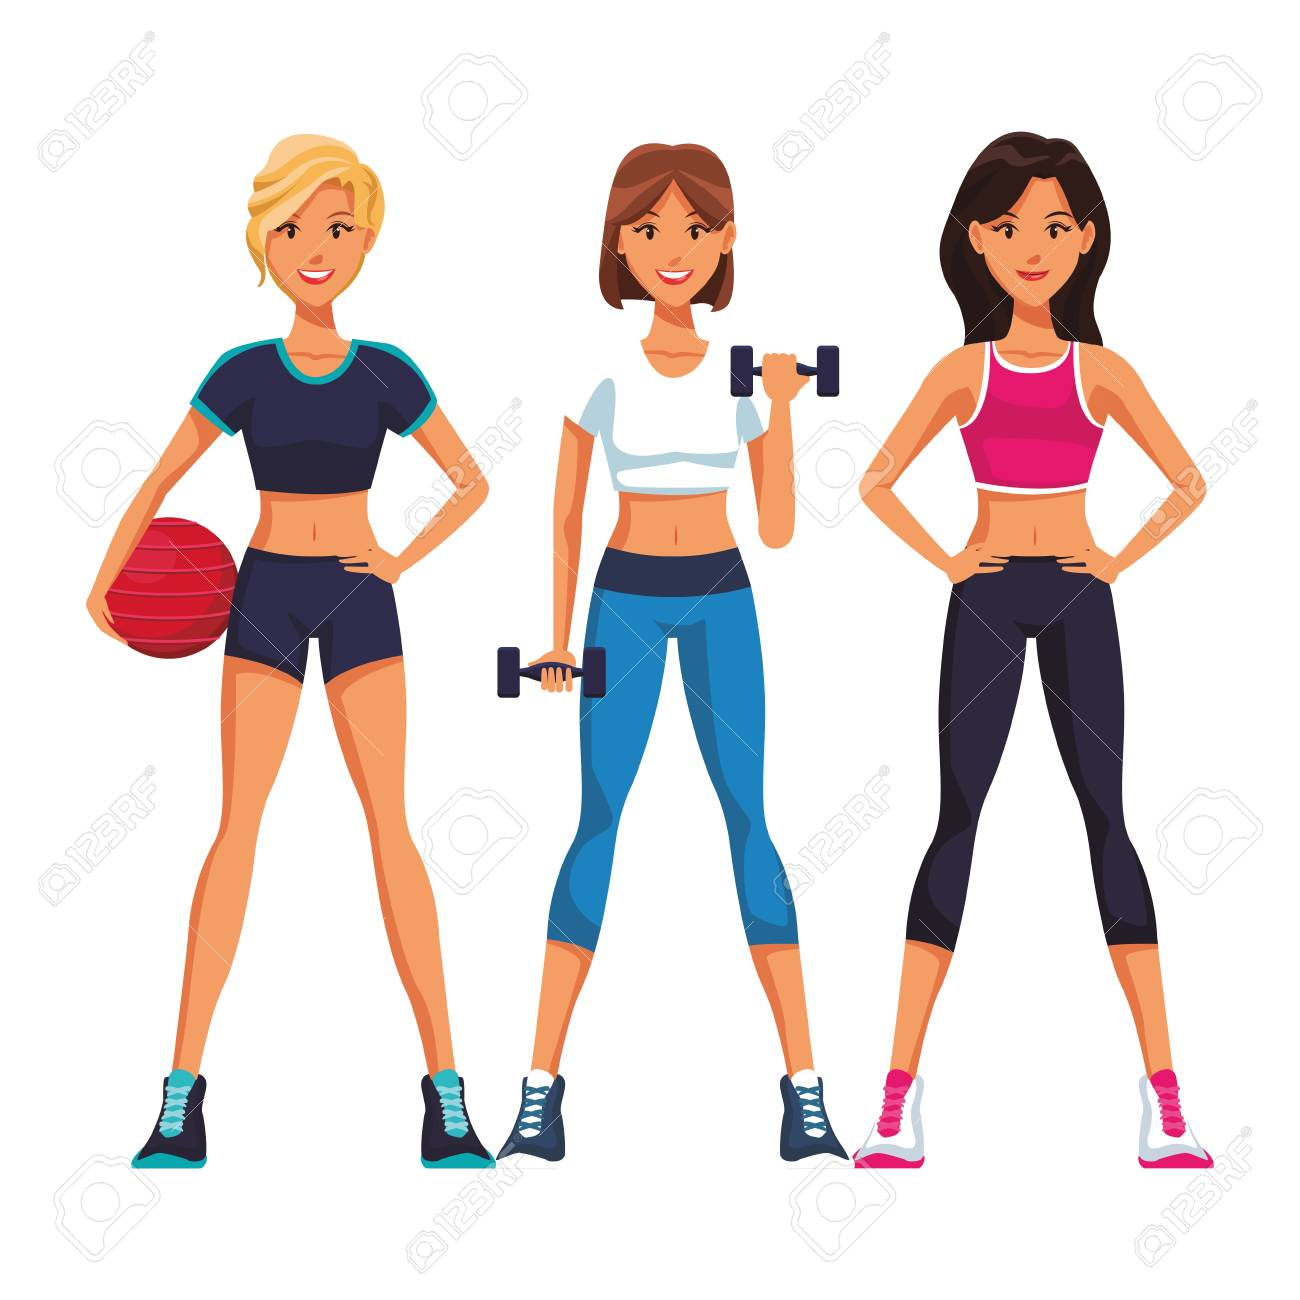 Fit Women Doing Exercise Cartoon Vector Illustration Graphic Royalty Free Cliparts Vectors And Stock Illustration Image 127074123 This stock cute fitness woman cartoon vector character comes in complete set of 112 different action poses. fit women doing exercise cartoon vector illustration graphic